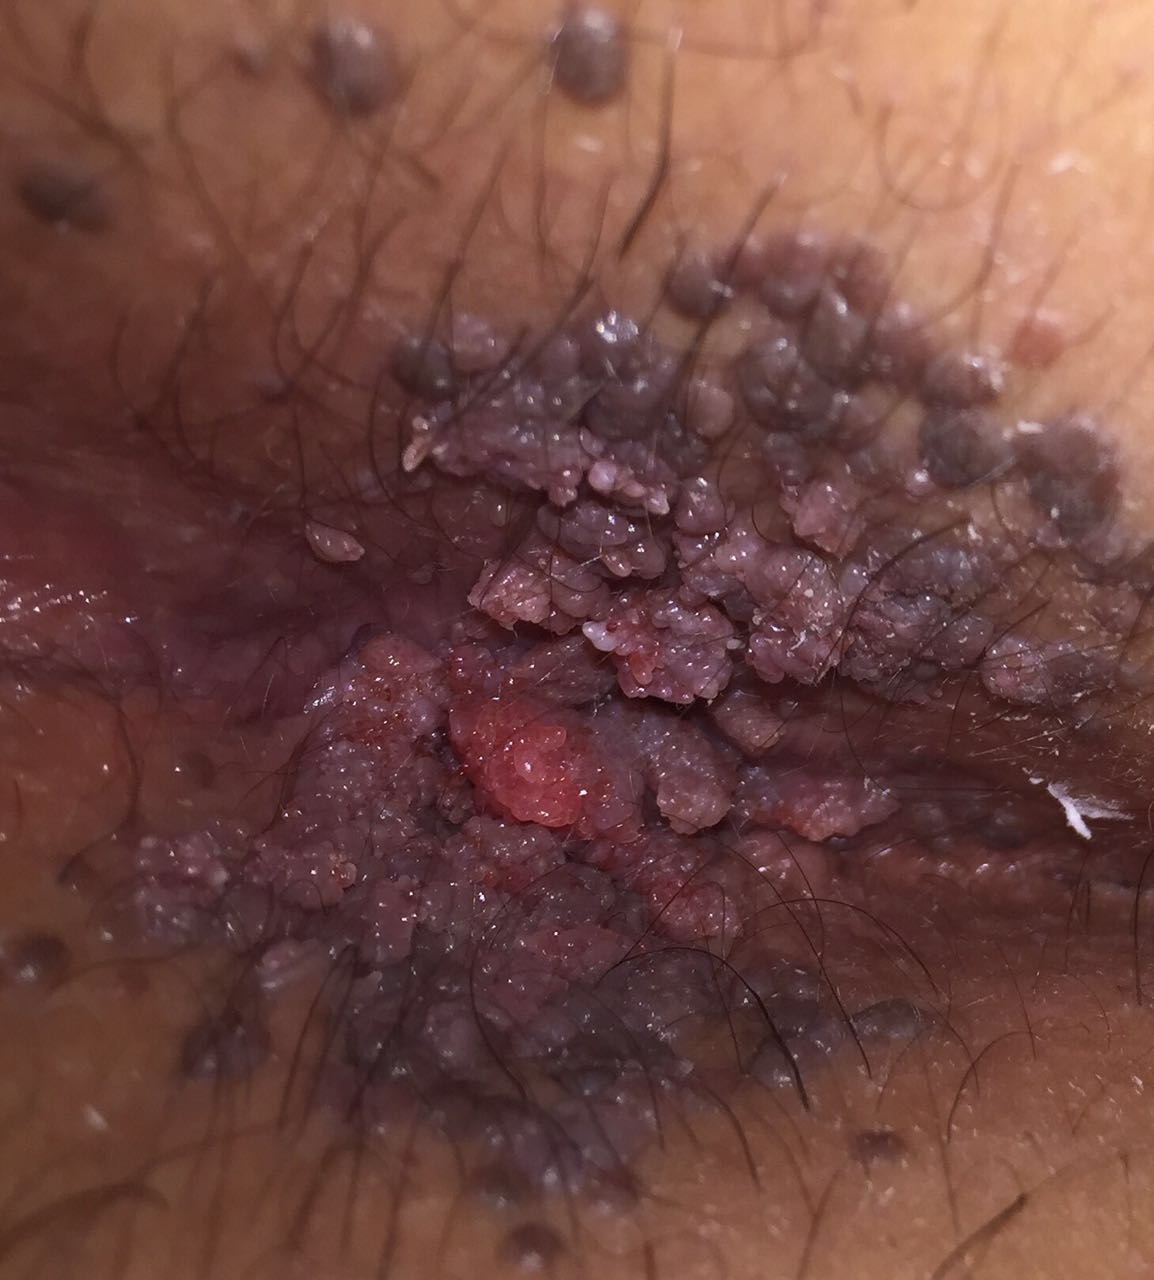 Treatment for anal warts